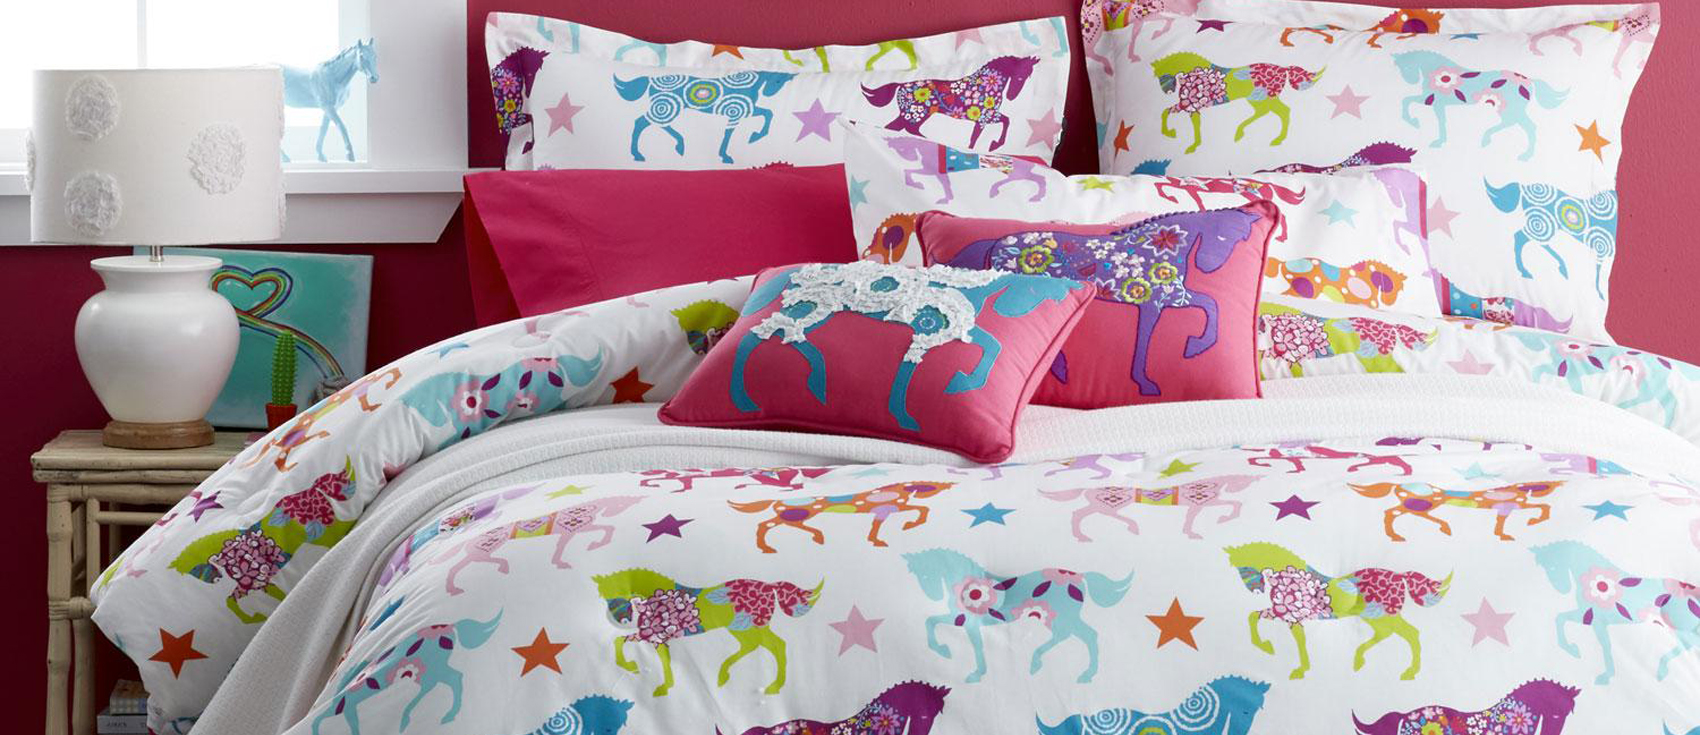 Girls Horse Bedding Cowgirl Theme Bedroom Pony Bedding